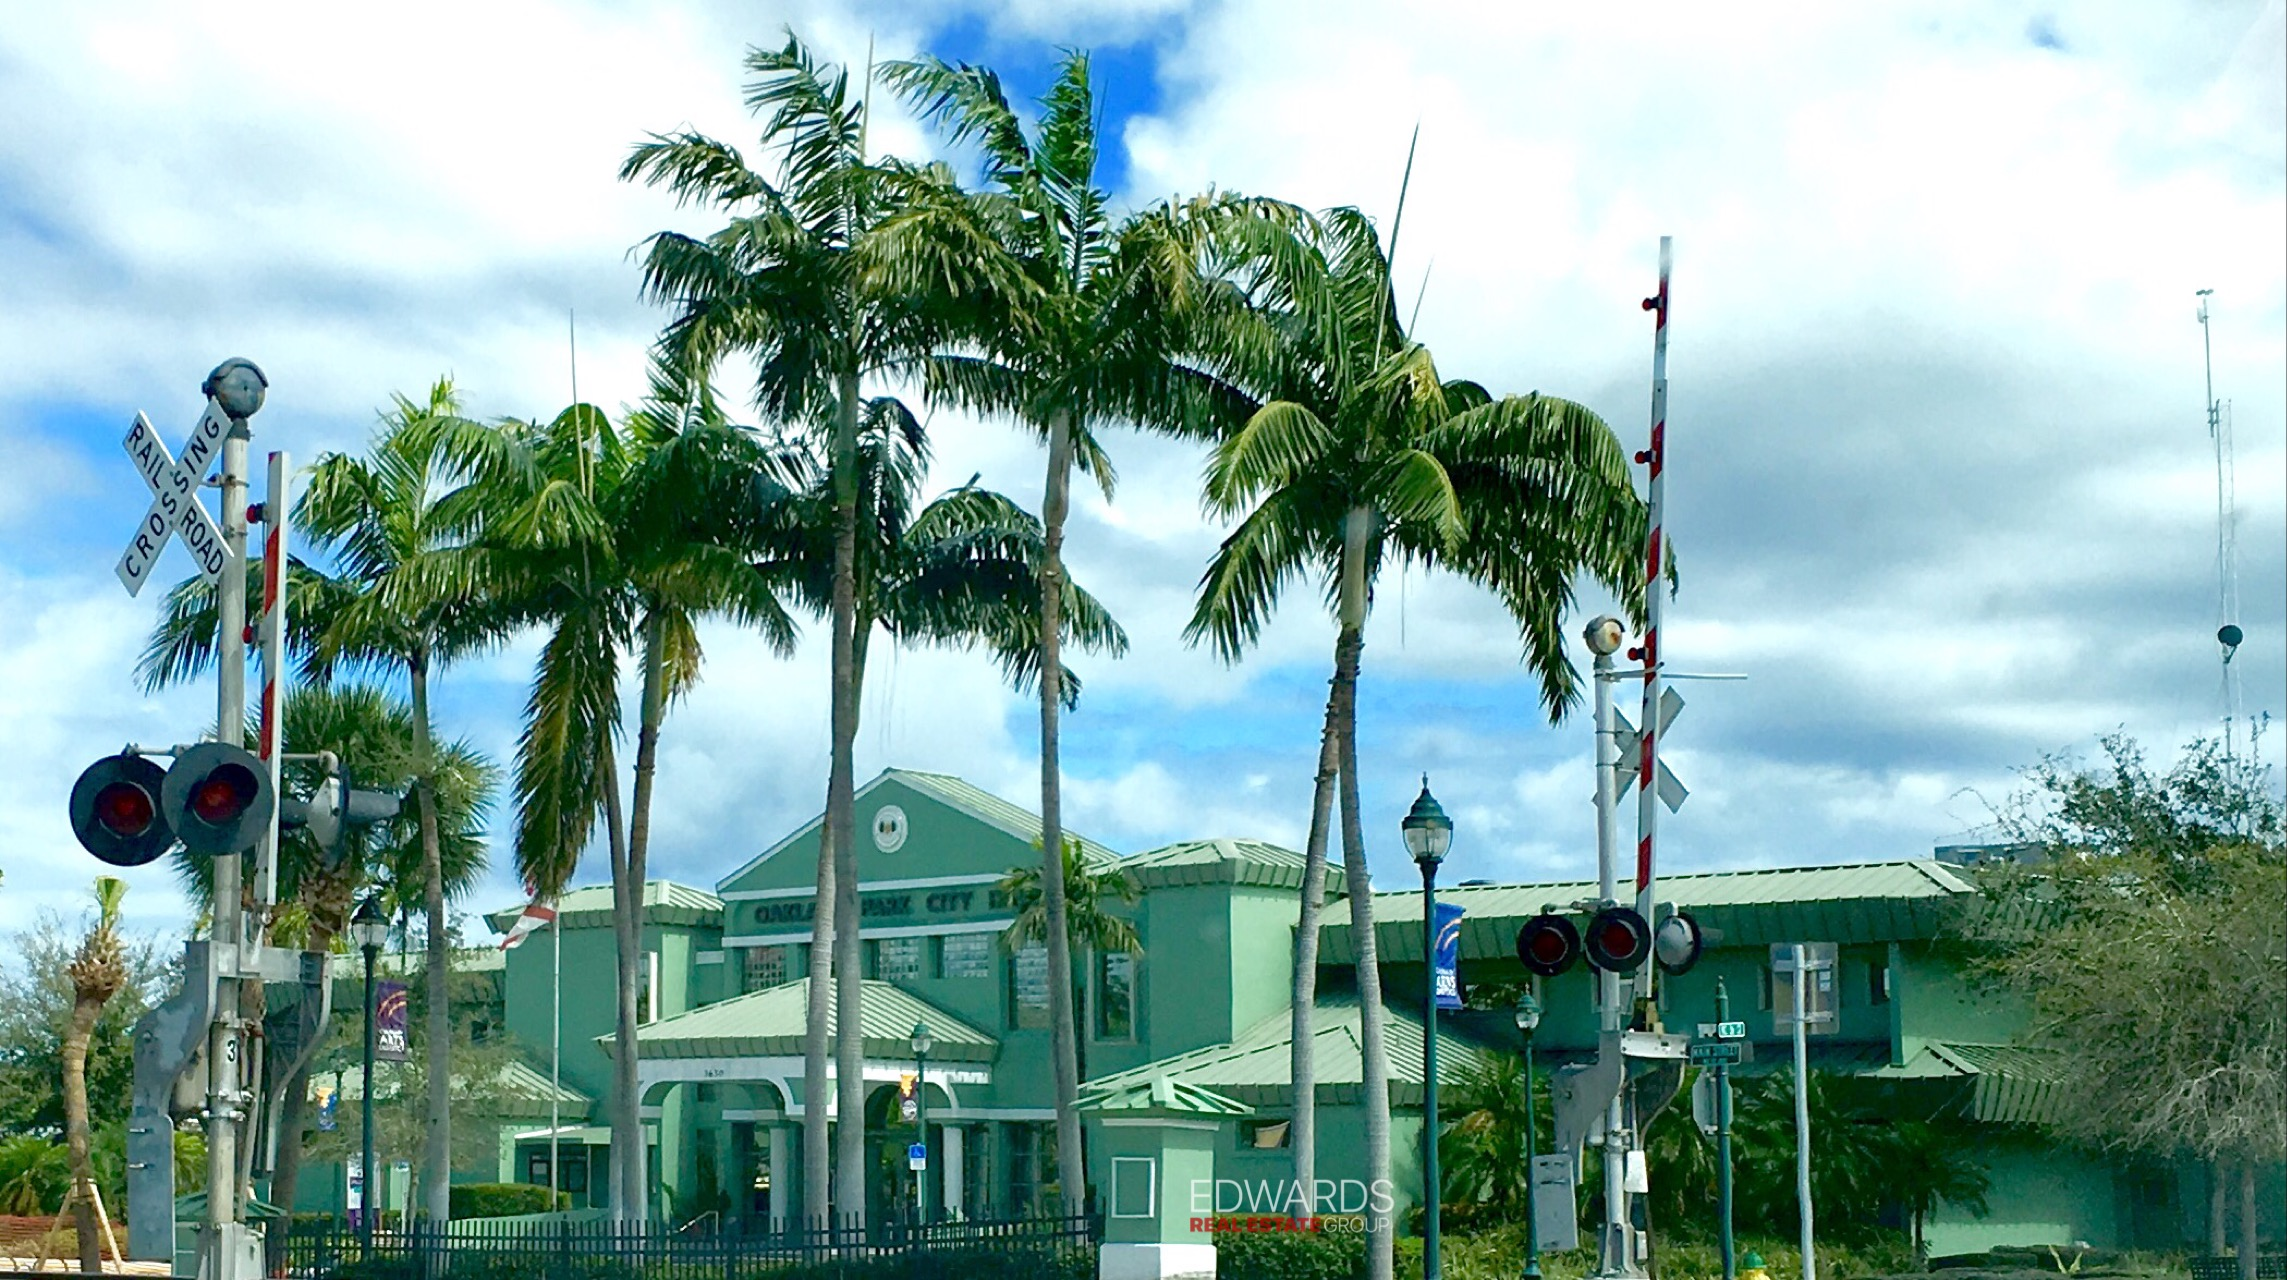 Oakland Park Town Hall located off Dixie Highway